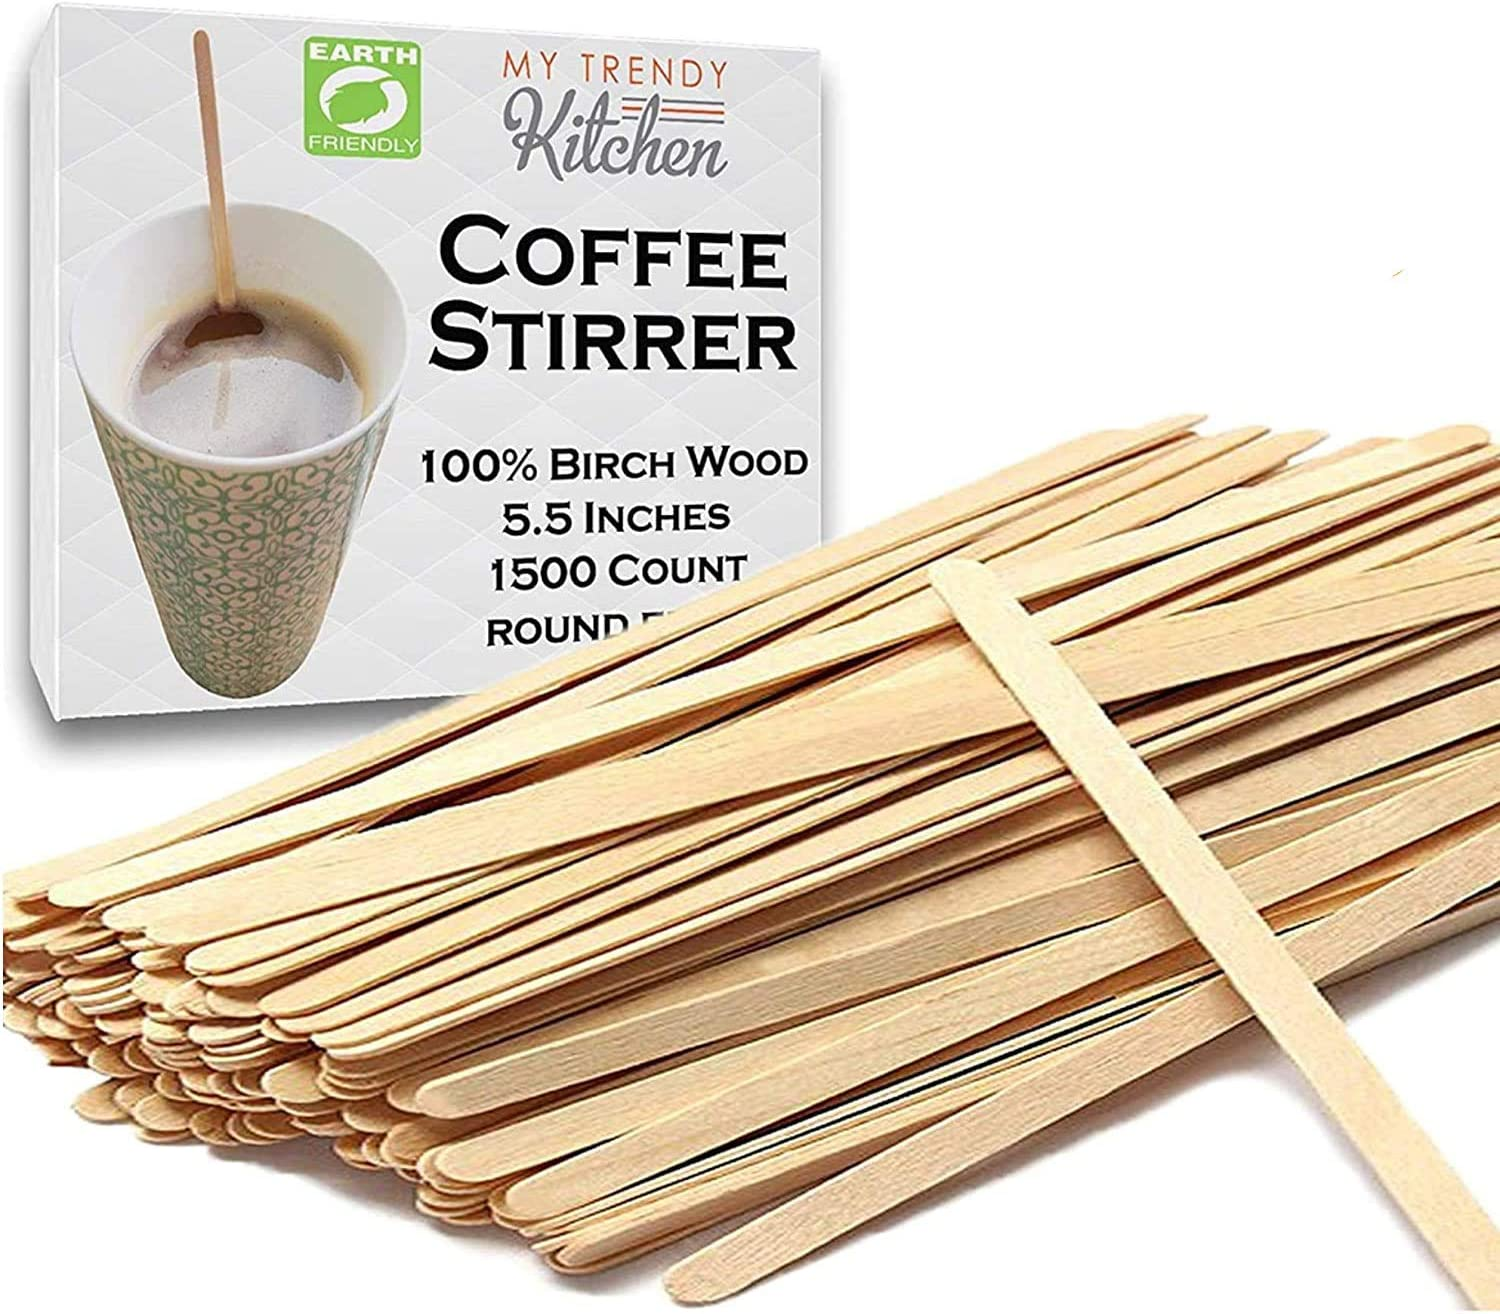 Wooden Coffee Stir Sticks (3000 Count) - Eco-Friendly, Biodegradable Splinter-Free Birch Wood - Disposable Drink Stirrers for Beverage, Tea, and Crafts with Round Ends